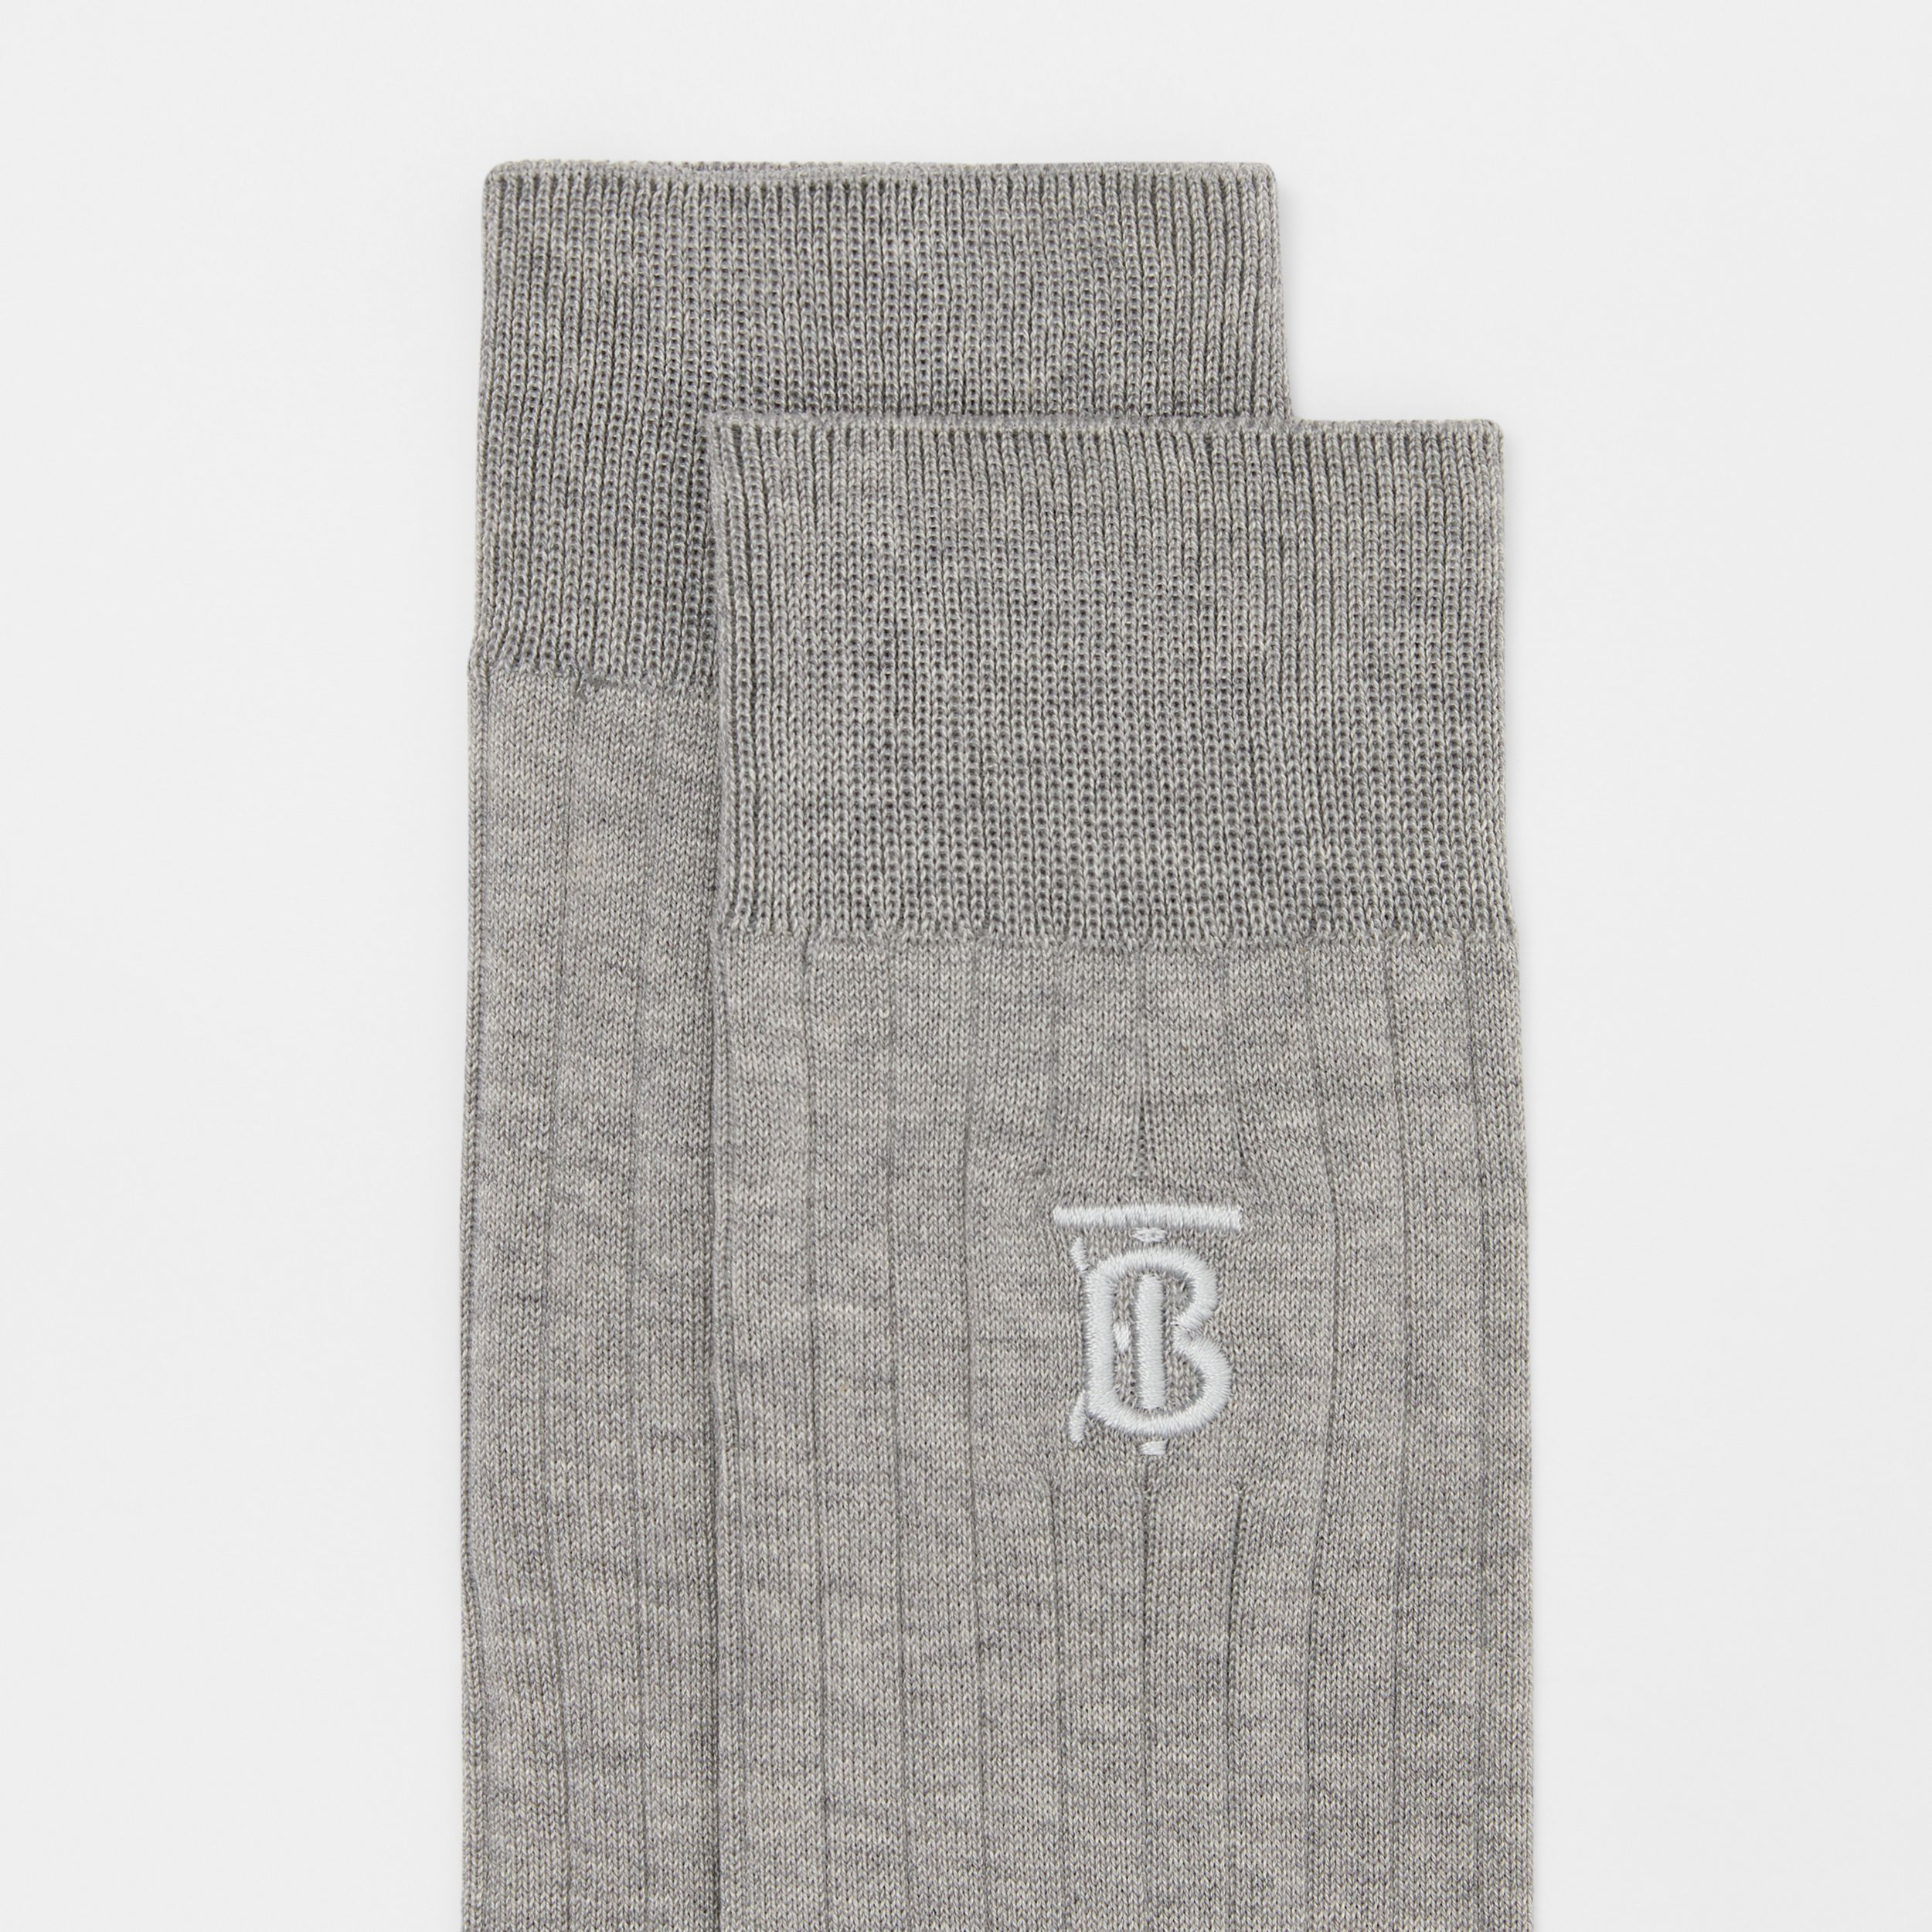 Monogram Motif Cotton Blend Socks in Grey | Burberry - 2